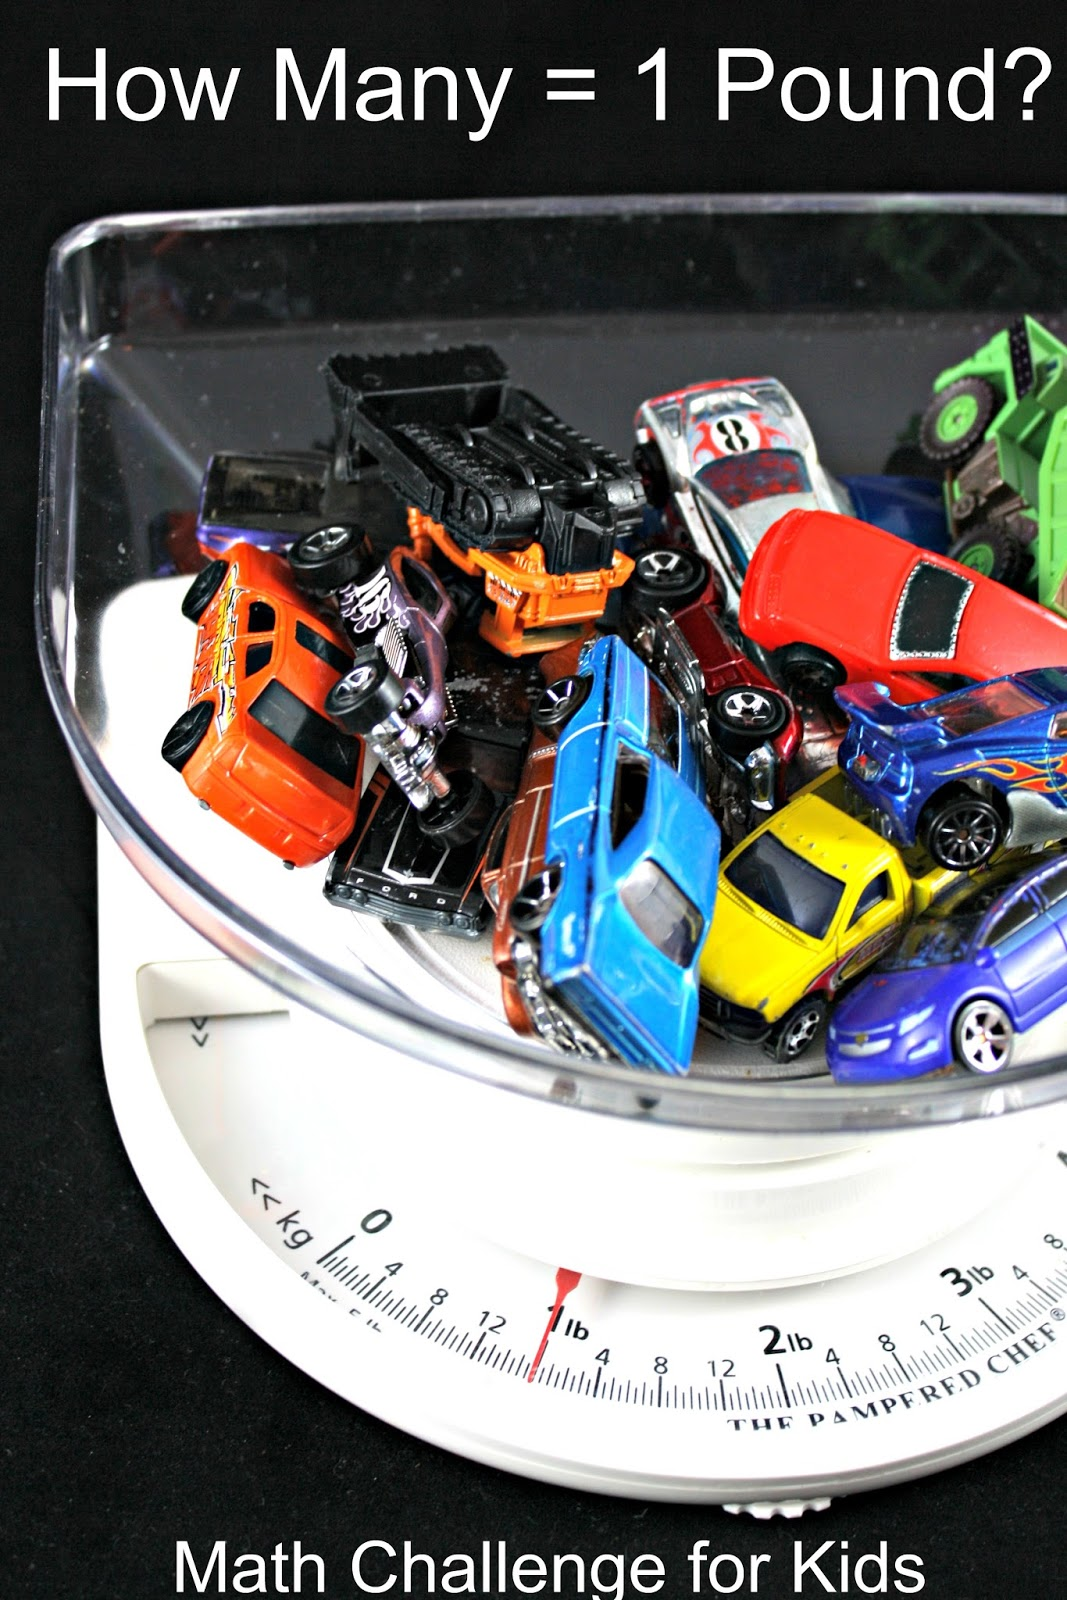 A fun and easy math challenge for kids. How many vehicles equals 1 pound?